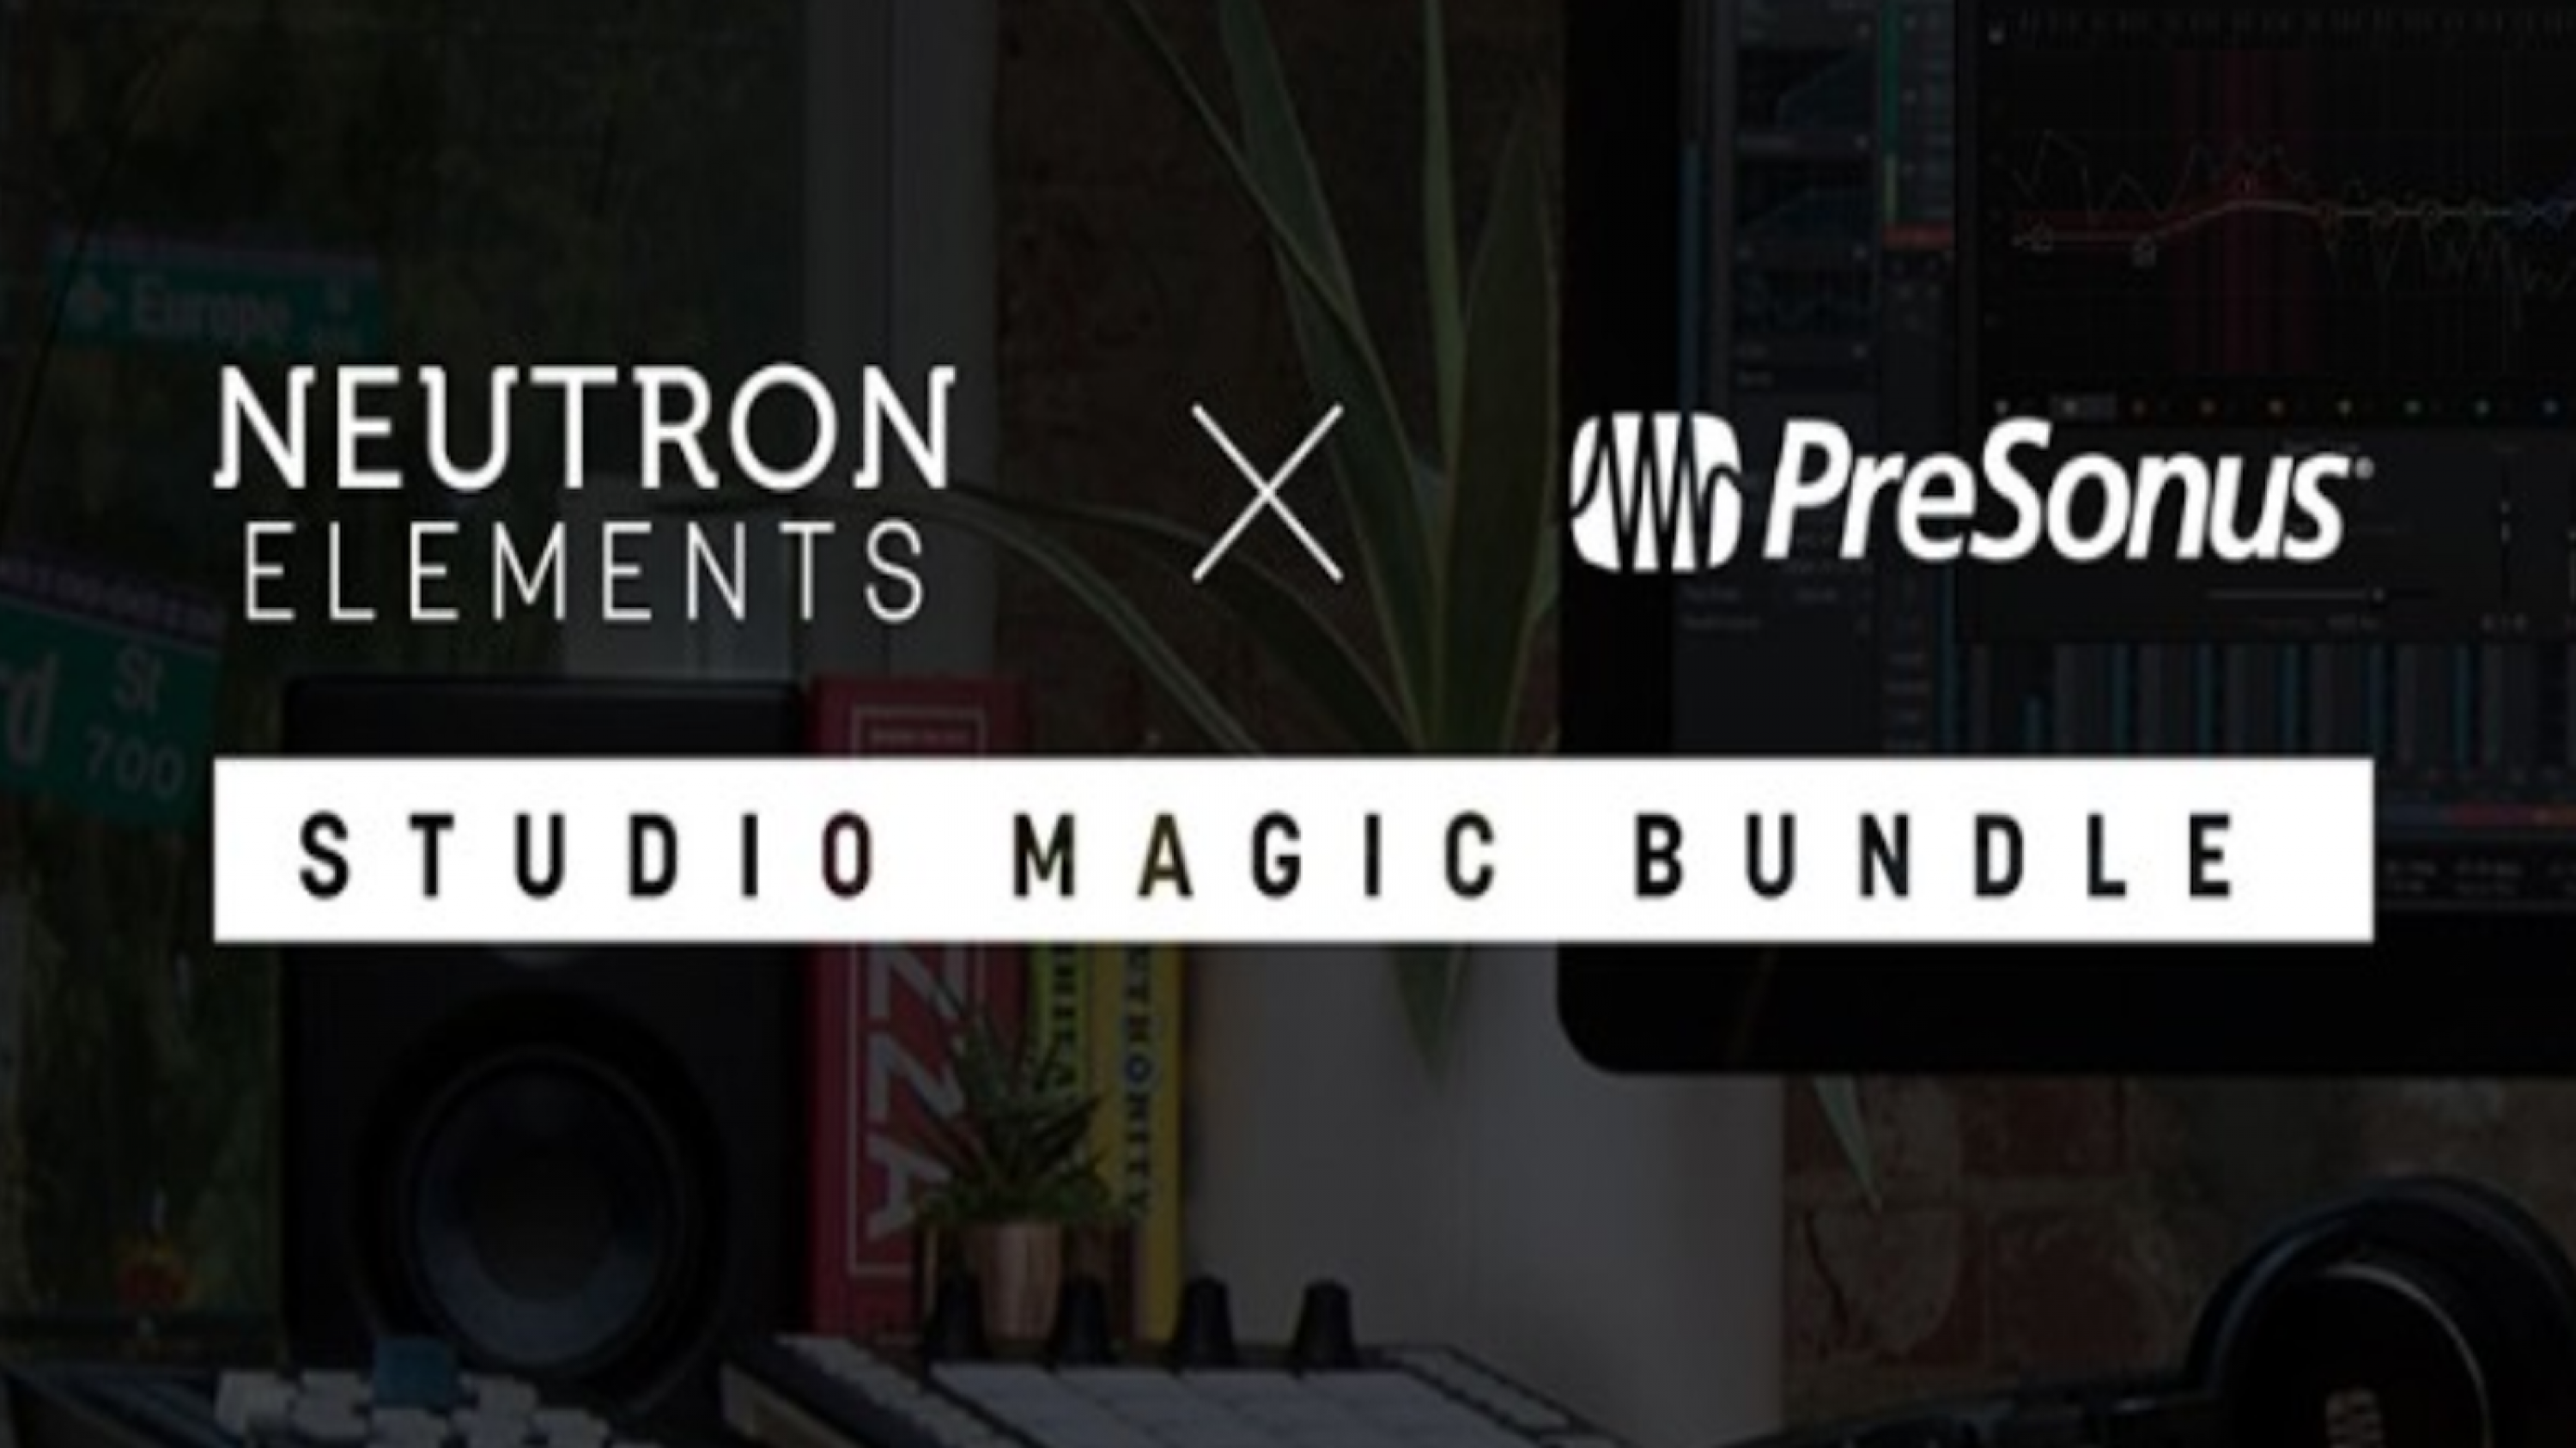 PreSonus Users Can Now Access iZotope Neutron Elements For Free